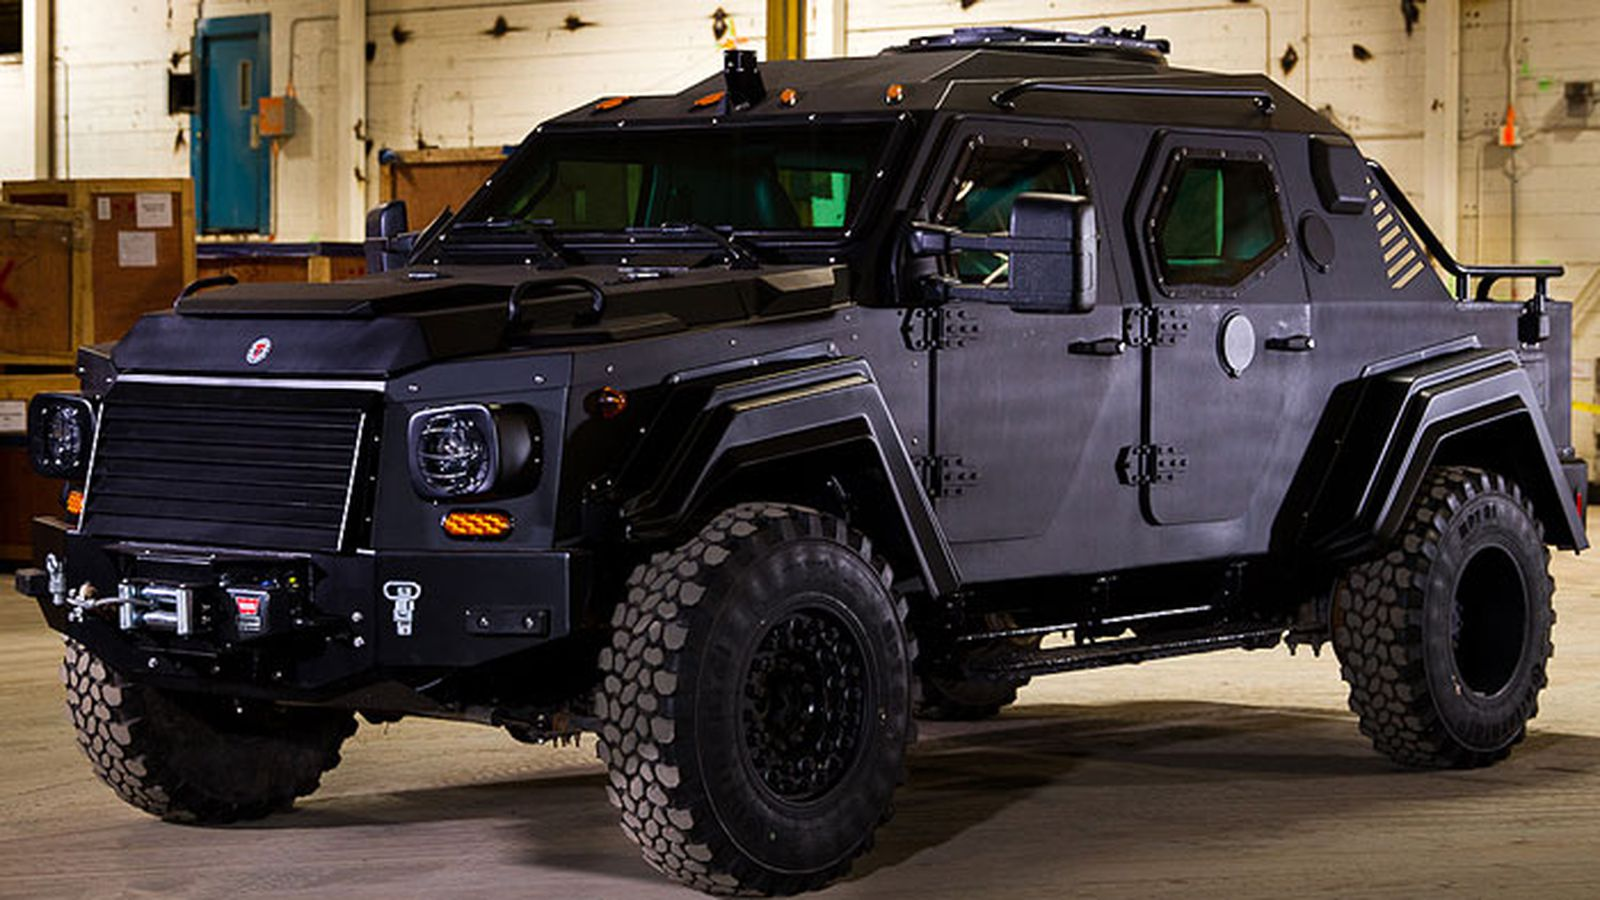 J.R. Smith is now driving an armored military vehicle ...